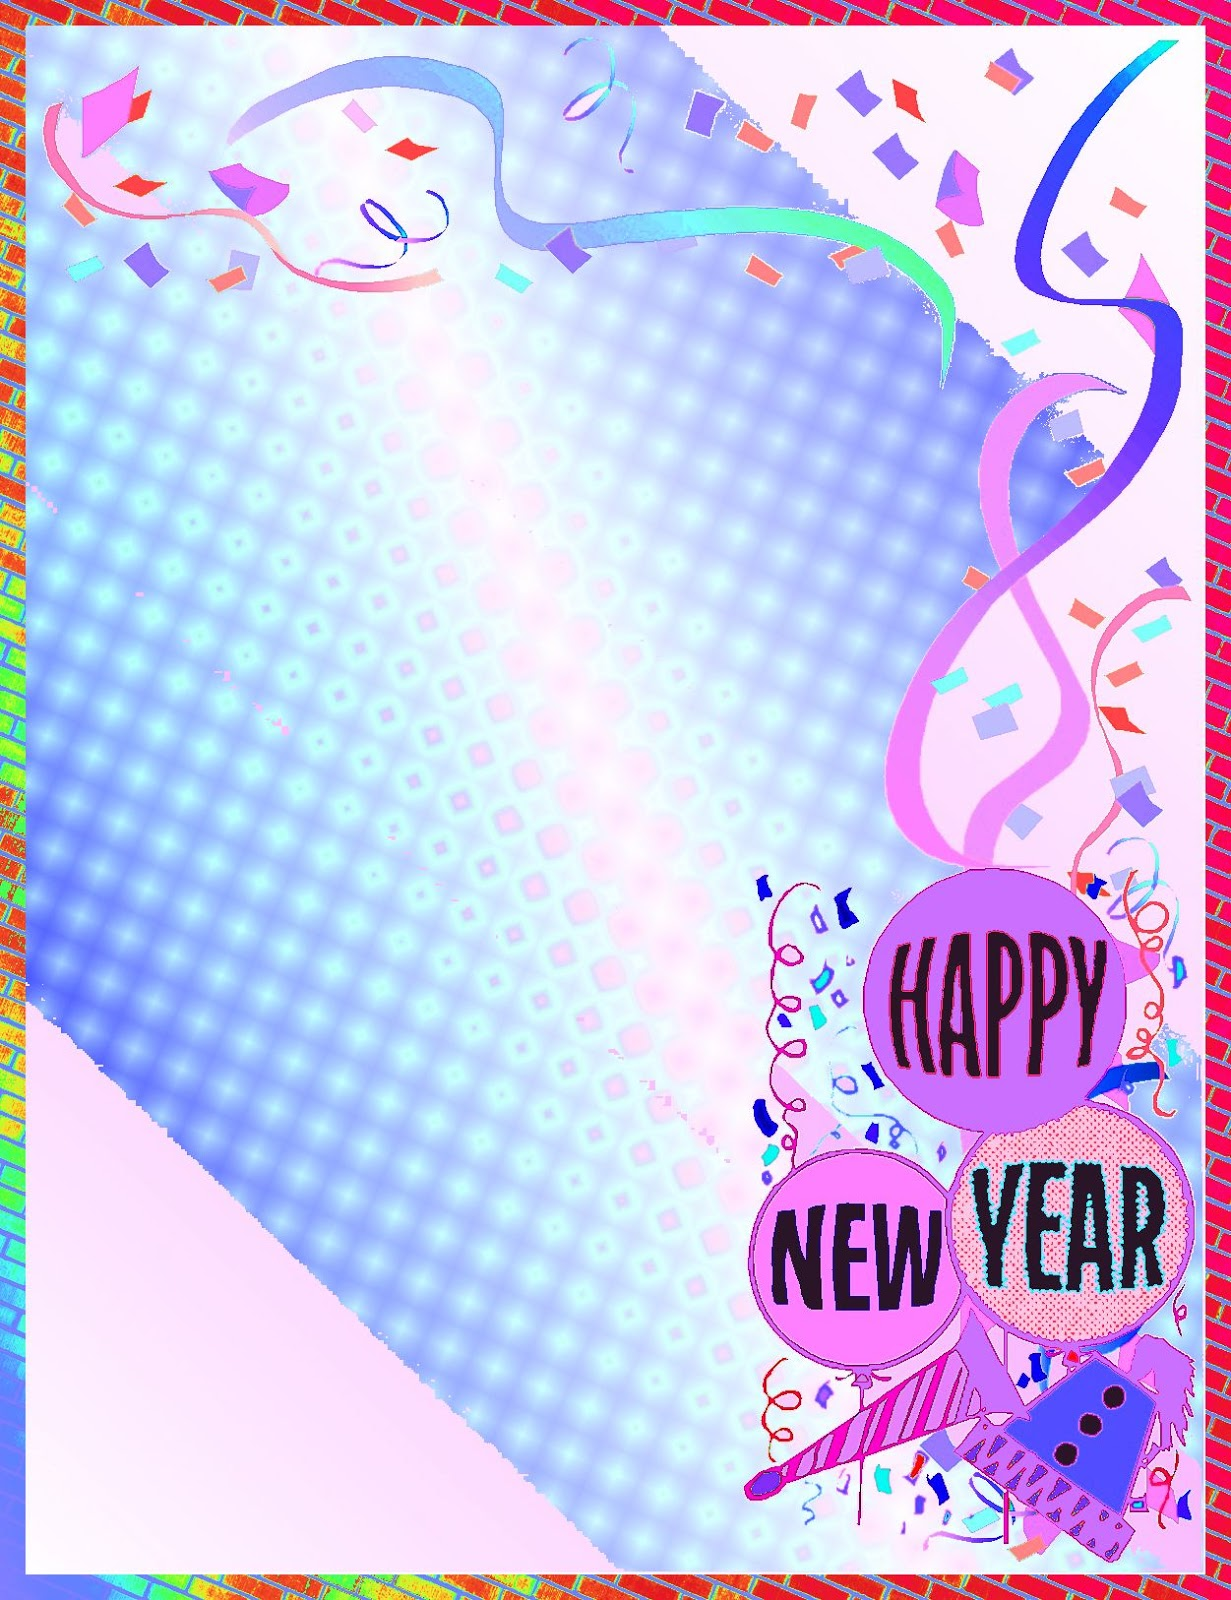 New Year Photo Frame Online Editing GIF Images - Happy Diwali Images ...